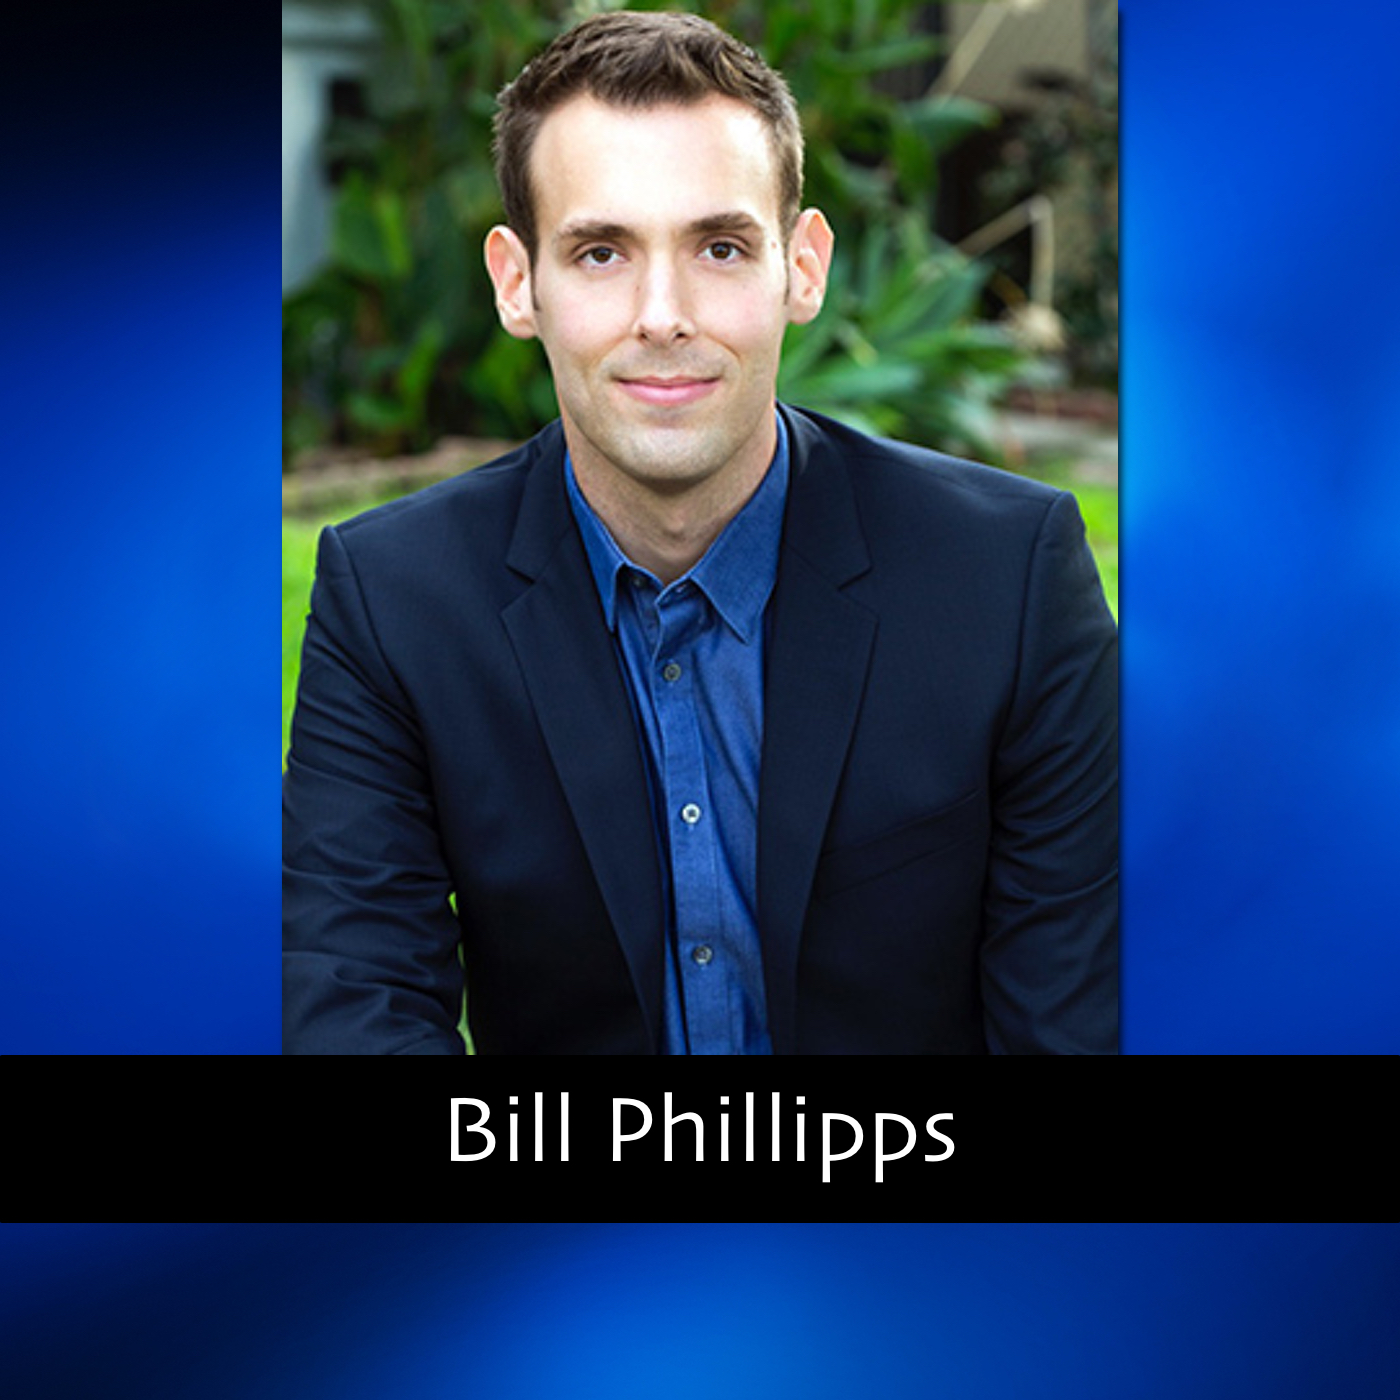 Bill Phillipps thumb.jpg